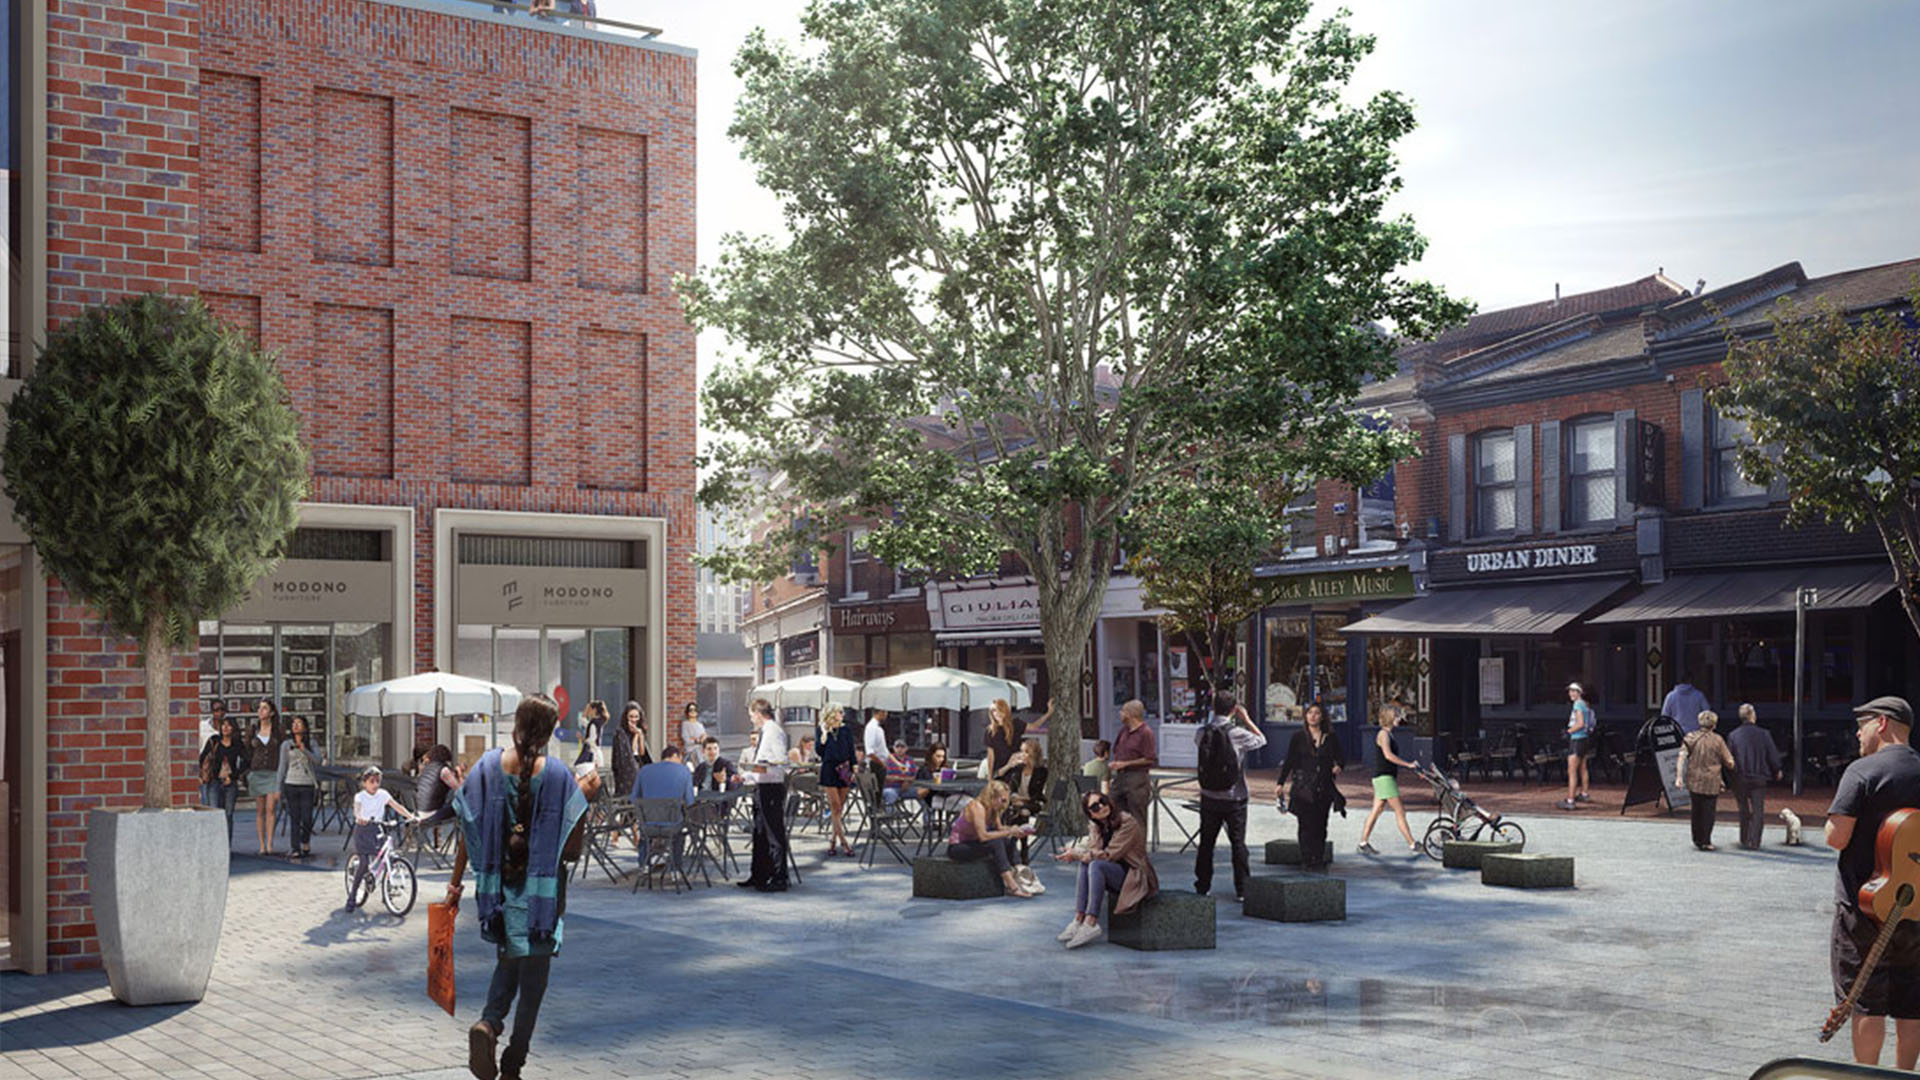 Putney High Street - WAF Future Commercial - Shortlisted Finalist 2015Architect - Grid